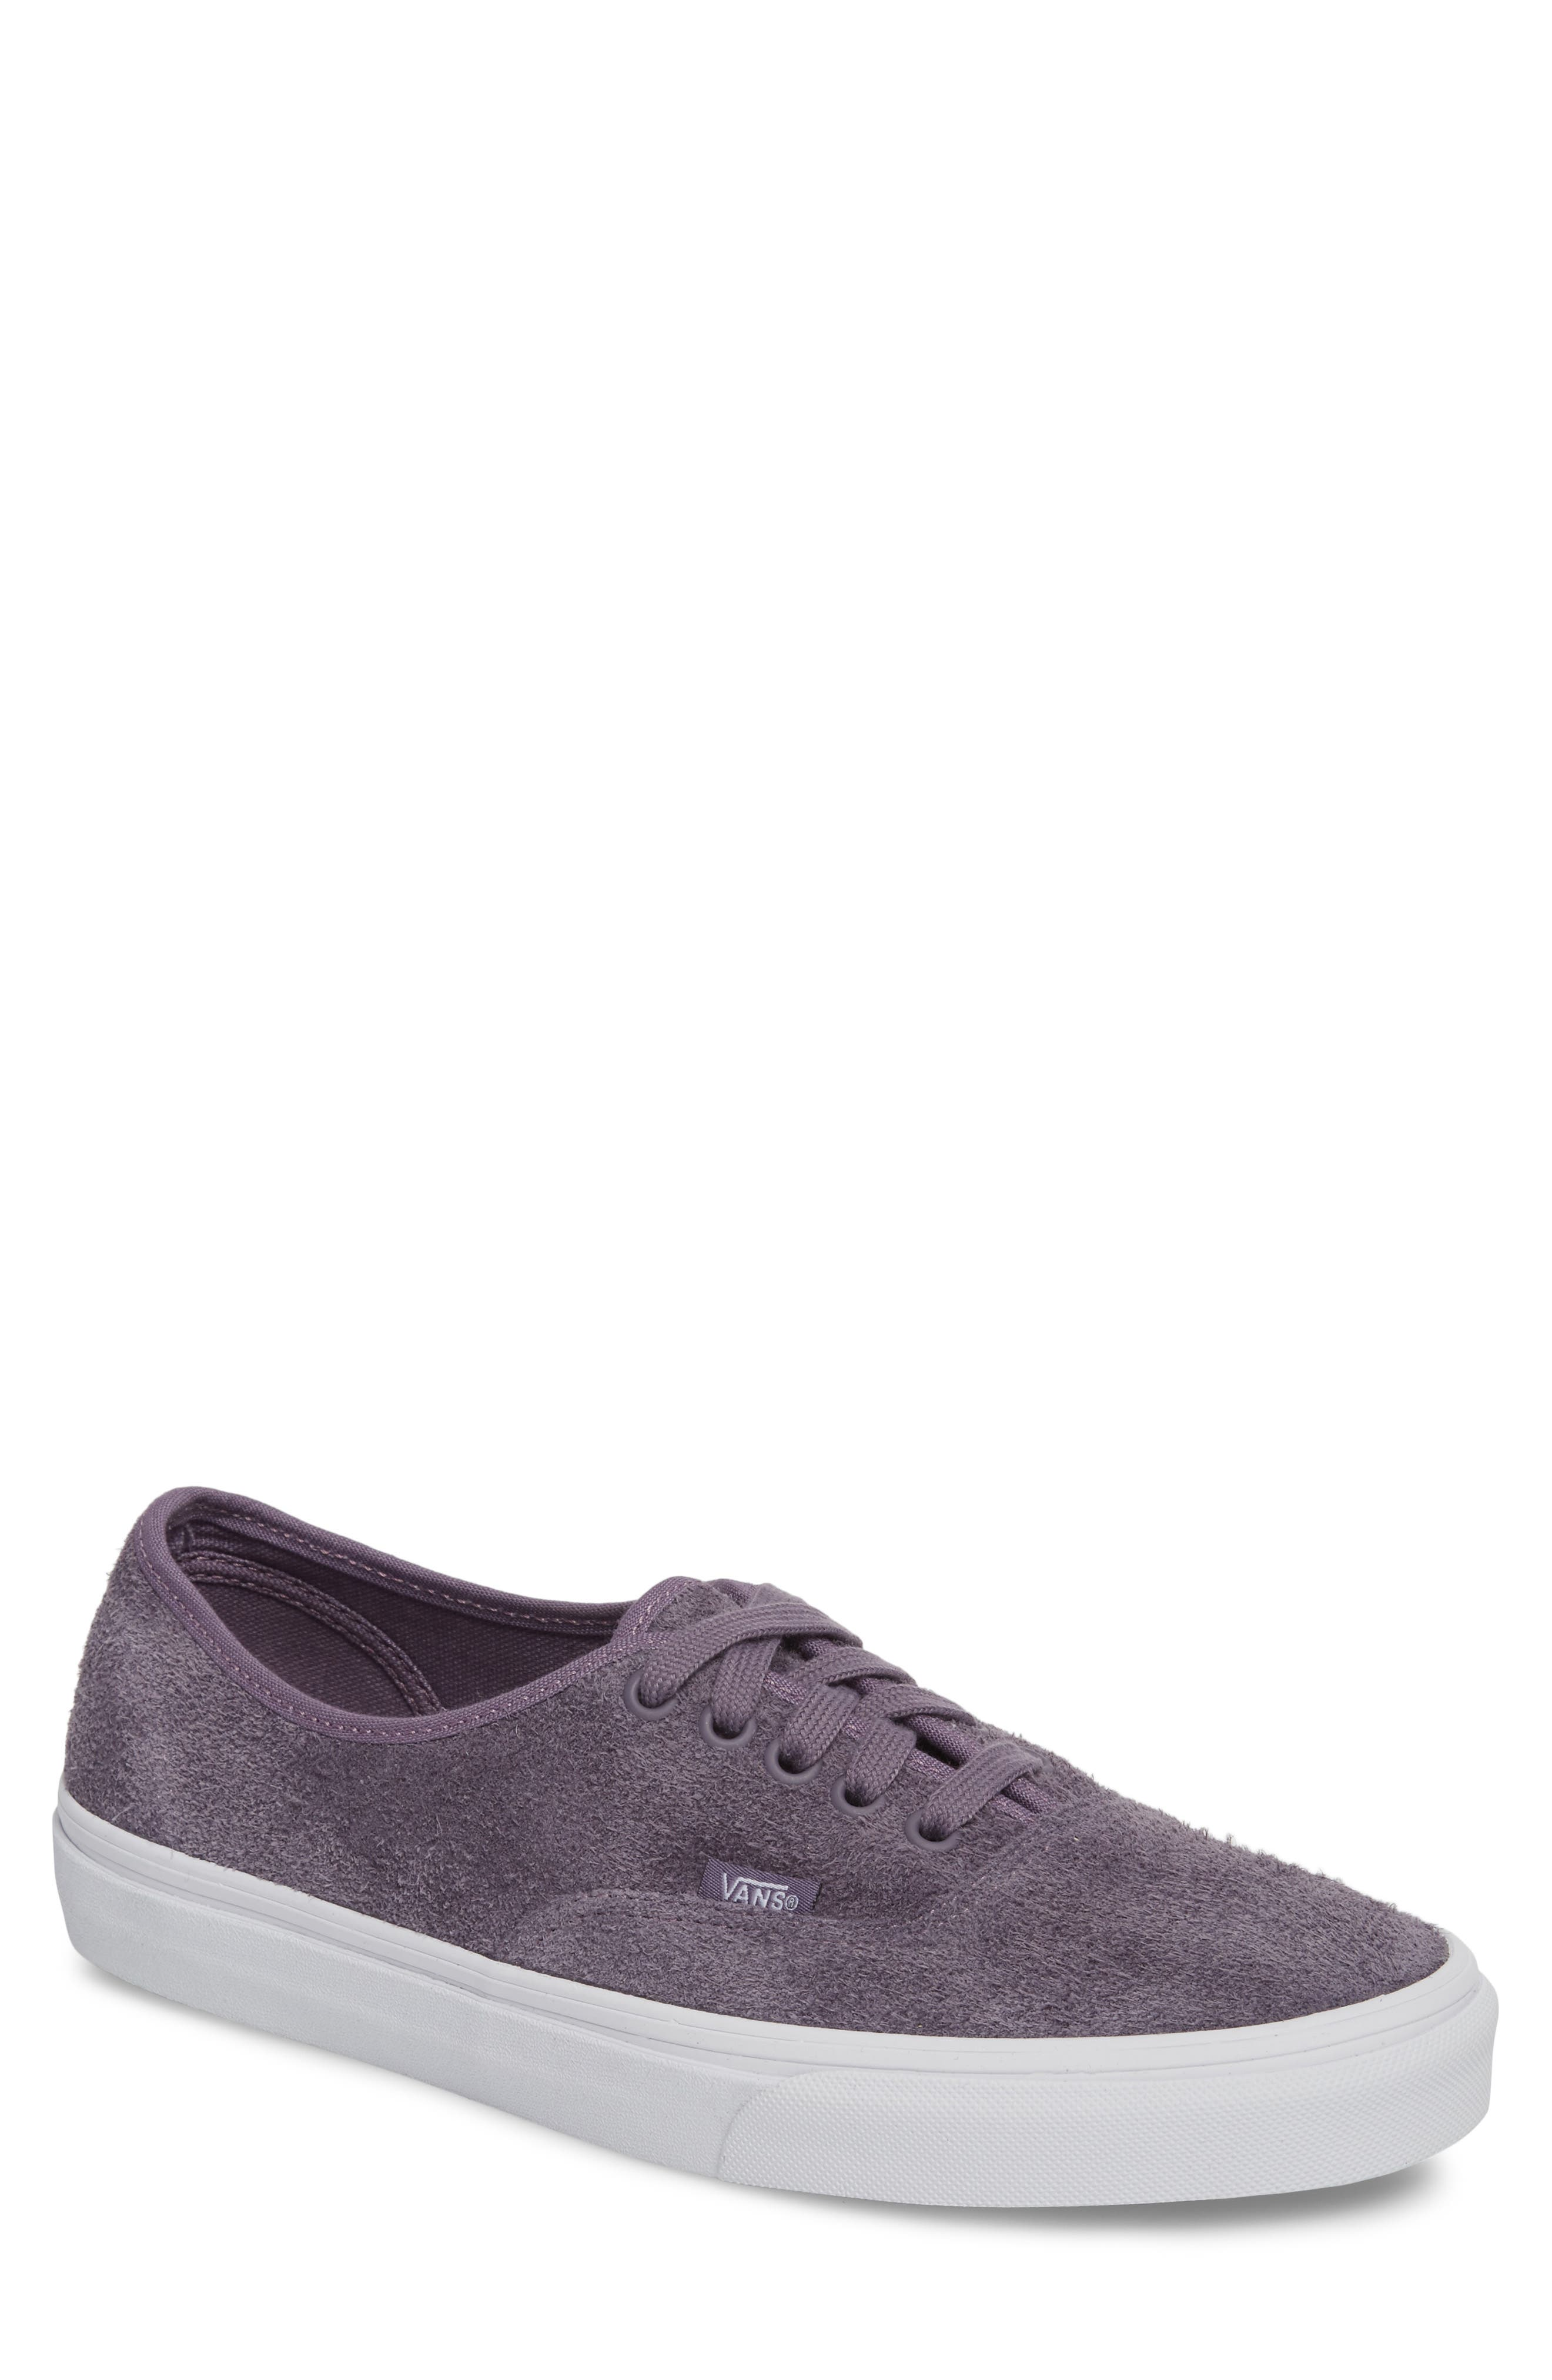 Authentic Hairy Suede Low Top Sneaker,                             Main thumbnail 1, color,                             510